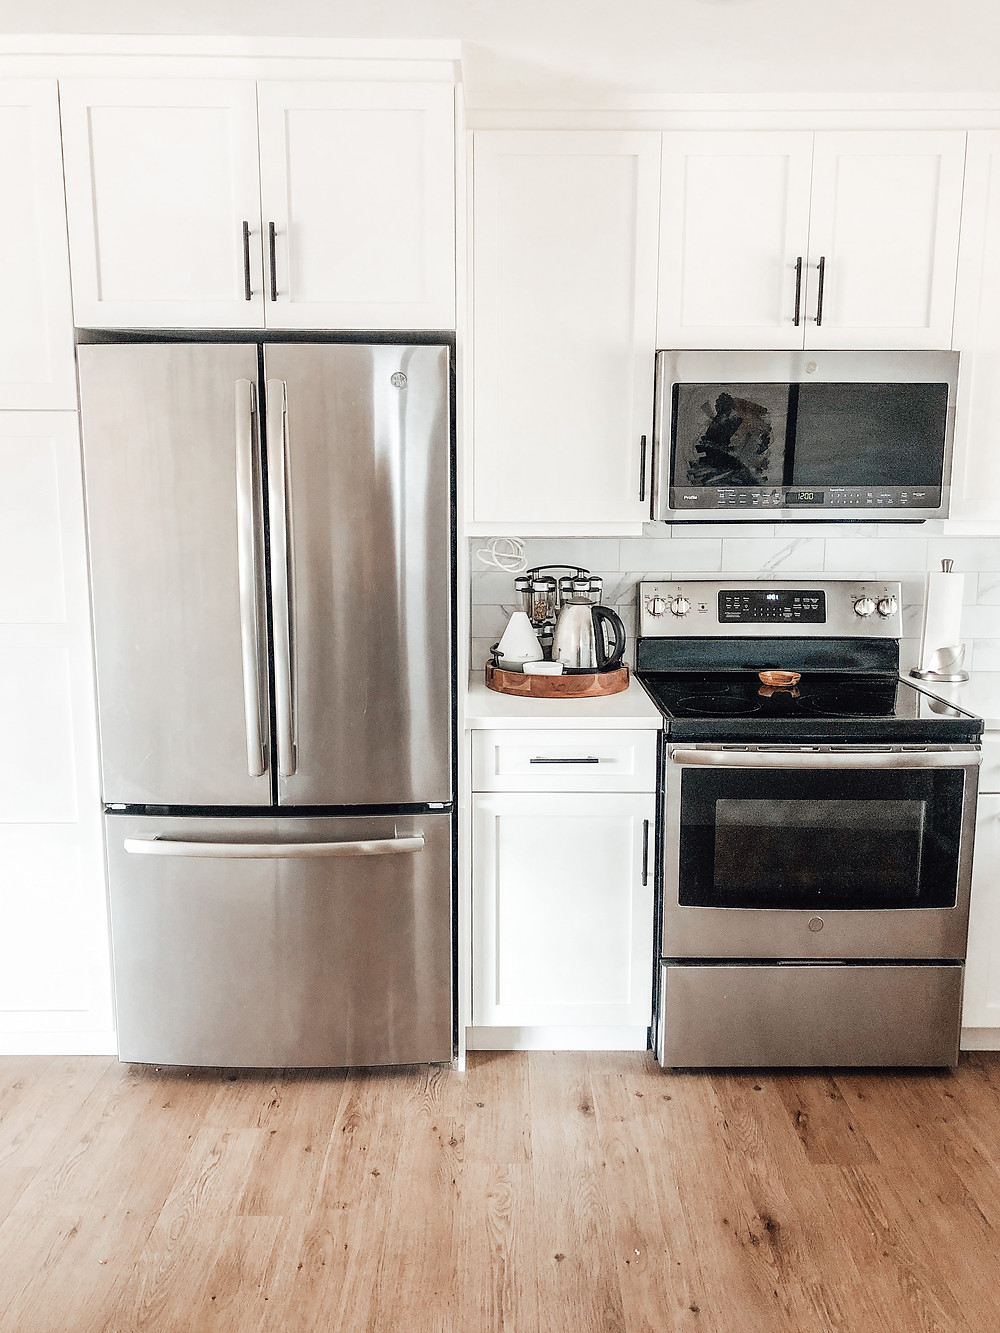 GE Appliances, stainless steel appliances